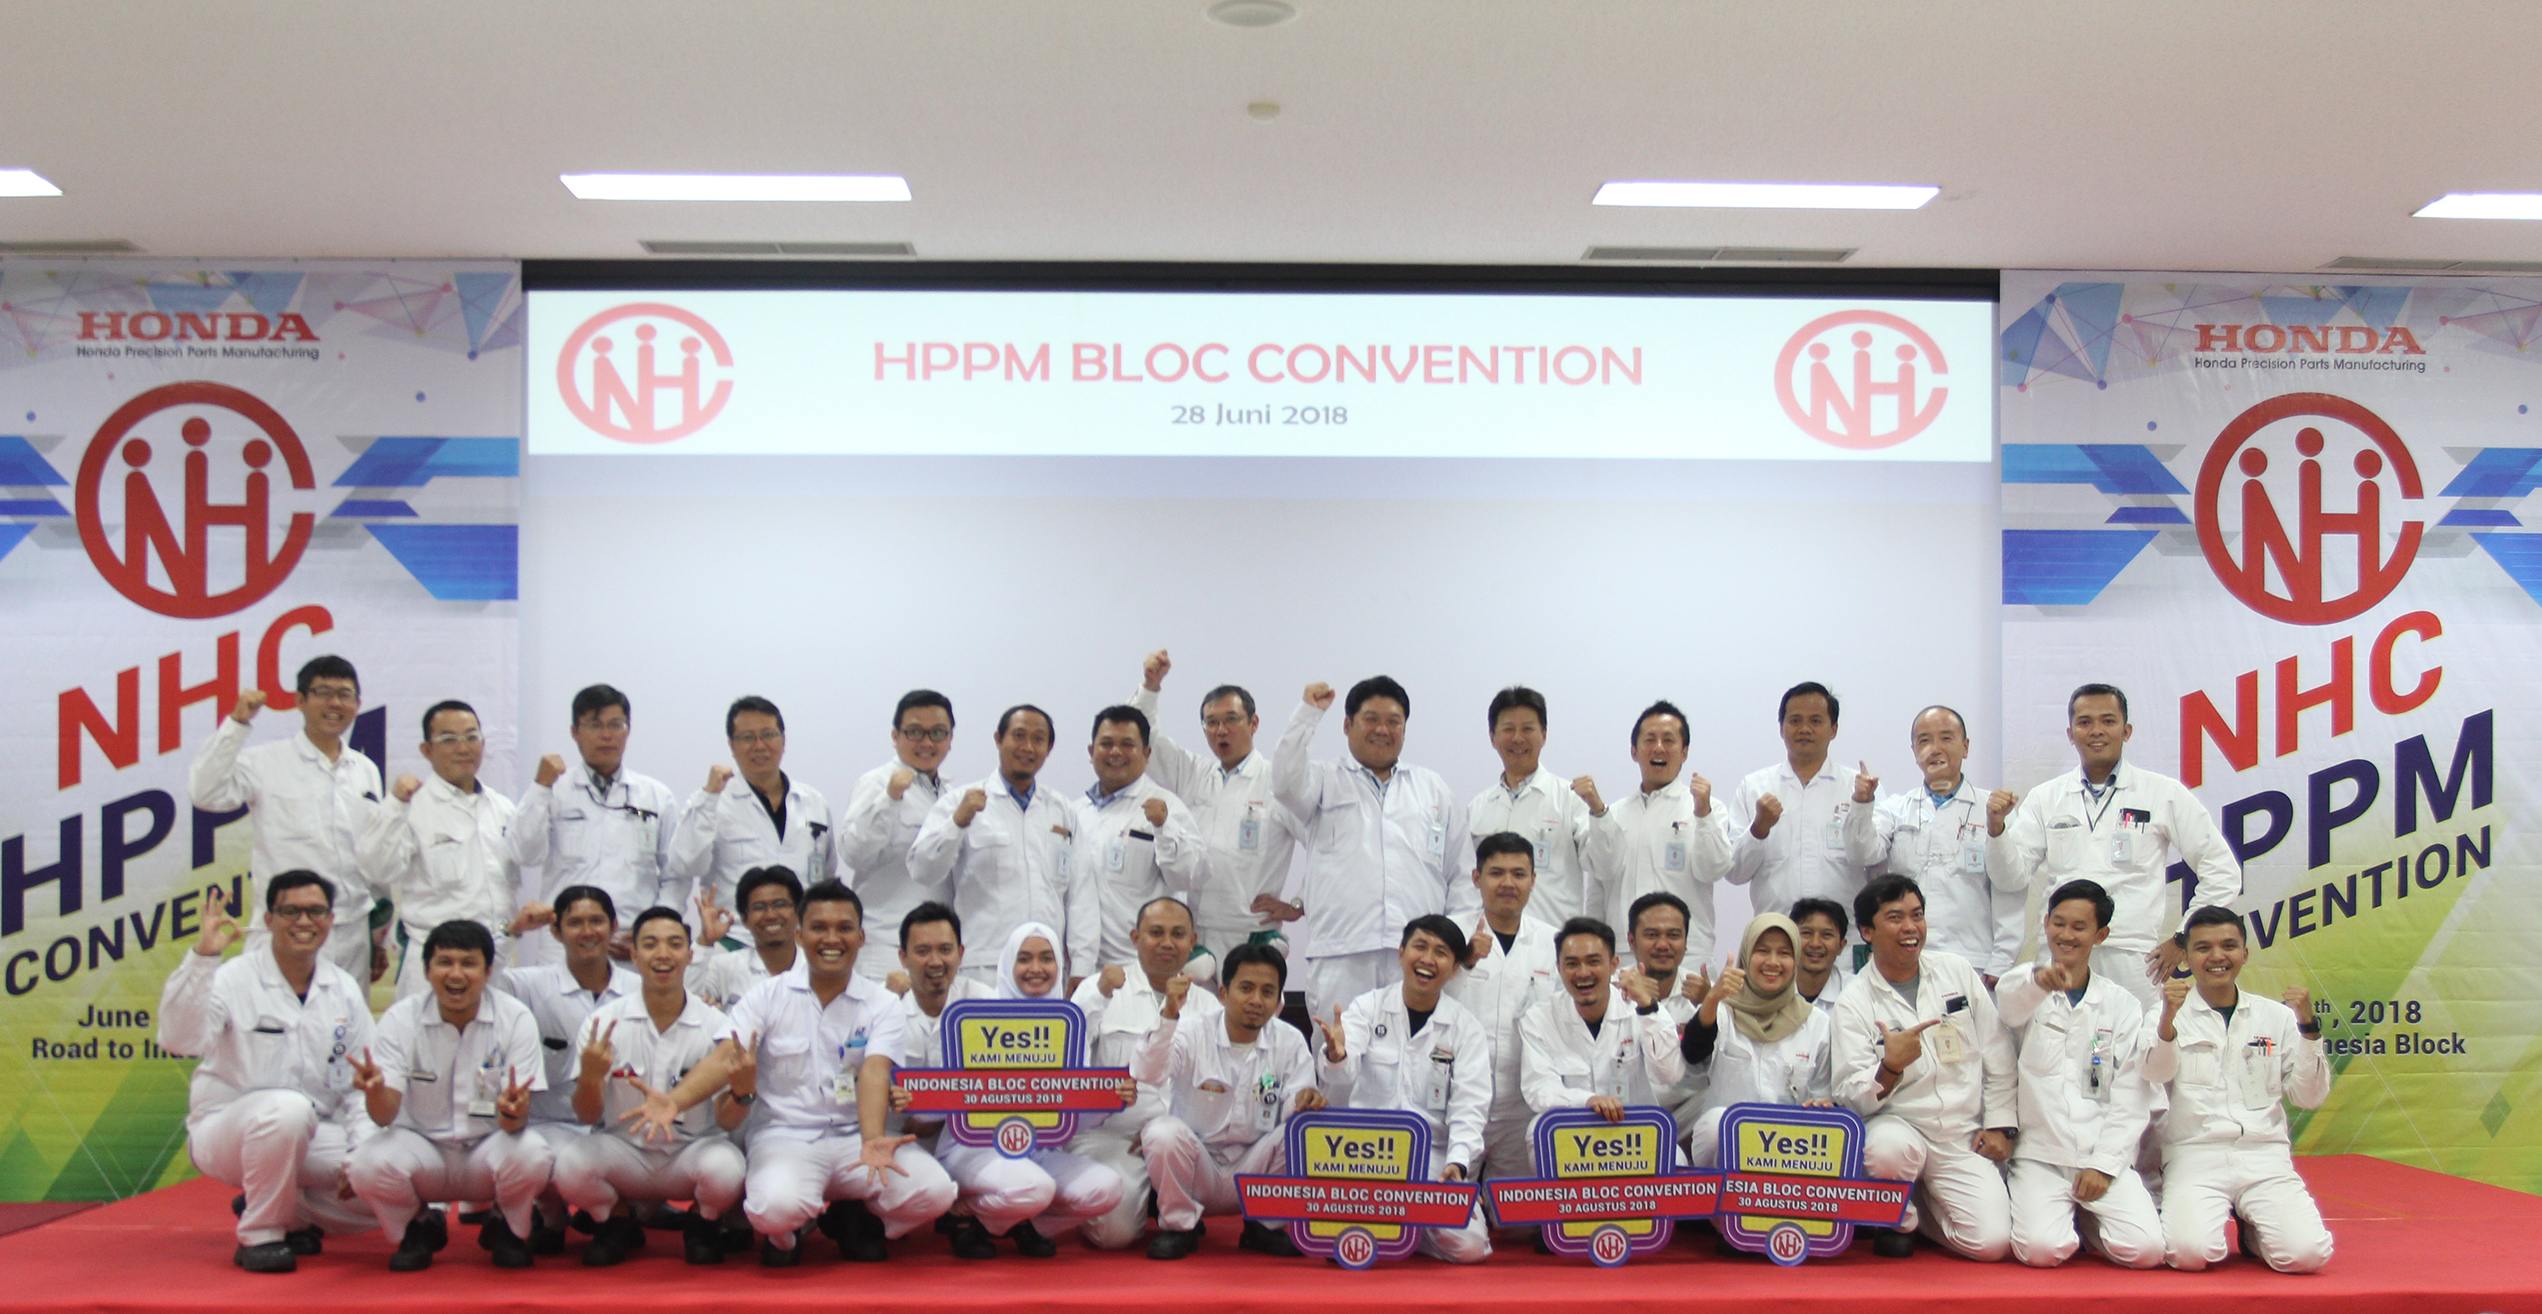 NHC HPPM Convention June 2018